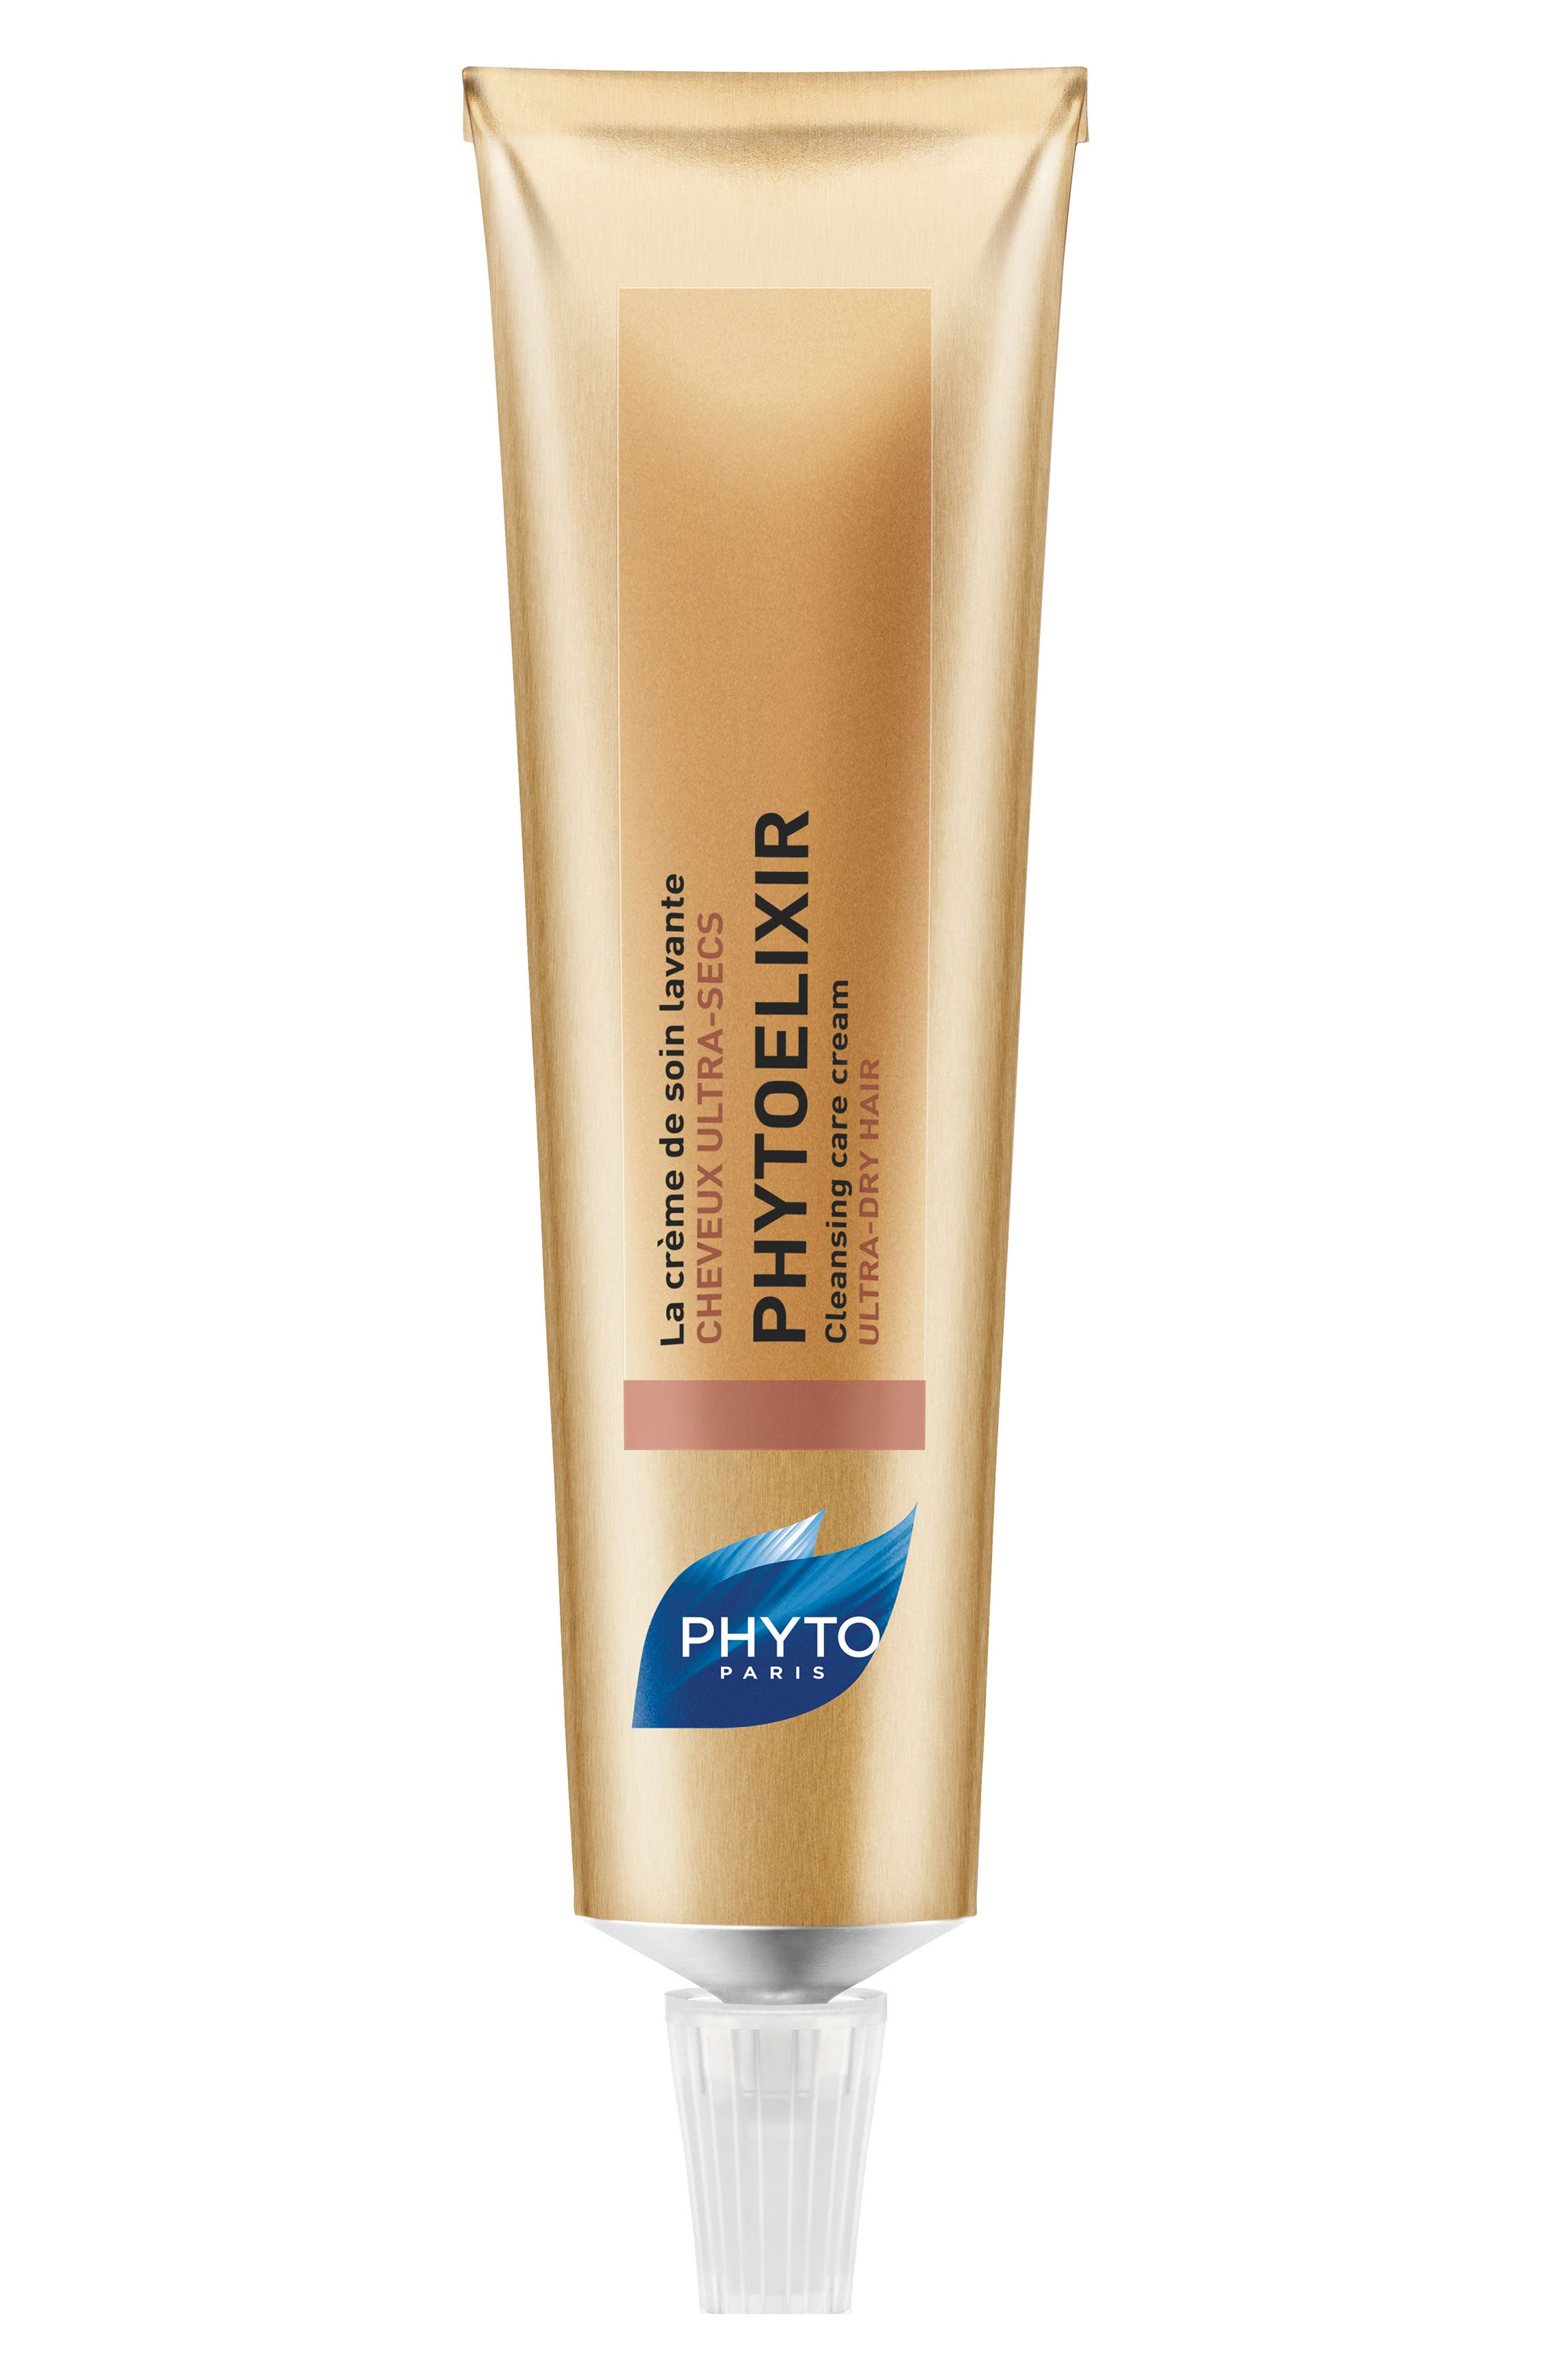 PHYTO Phytoelixir Cleansing Care Cream